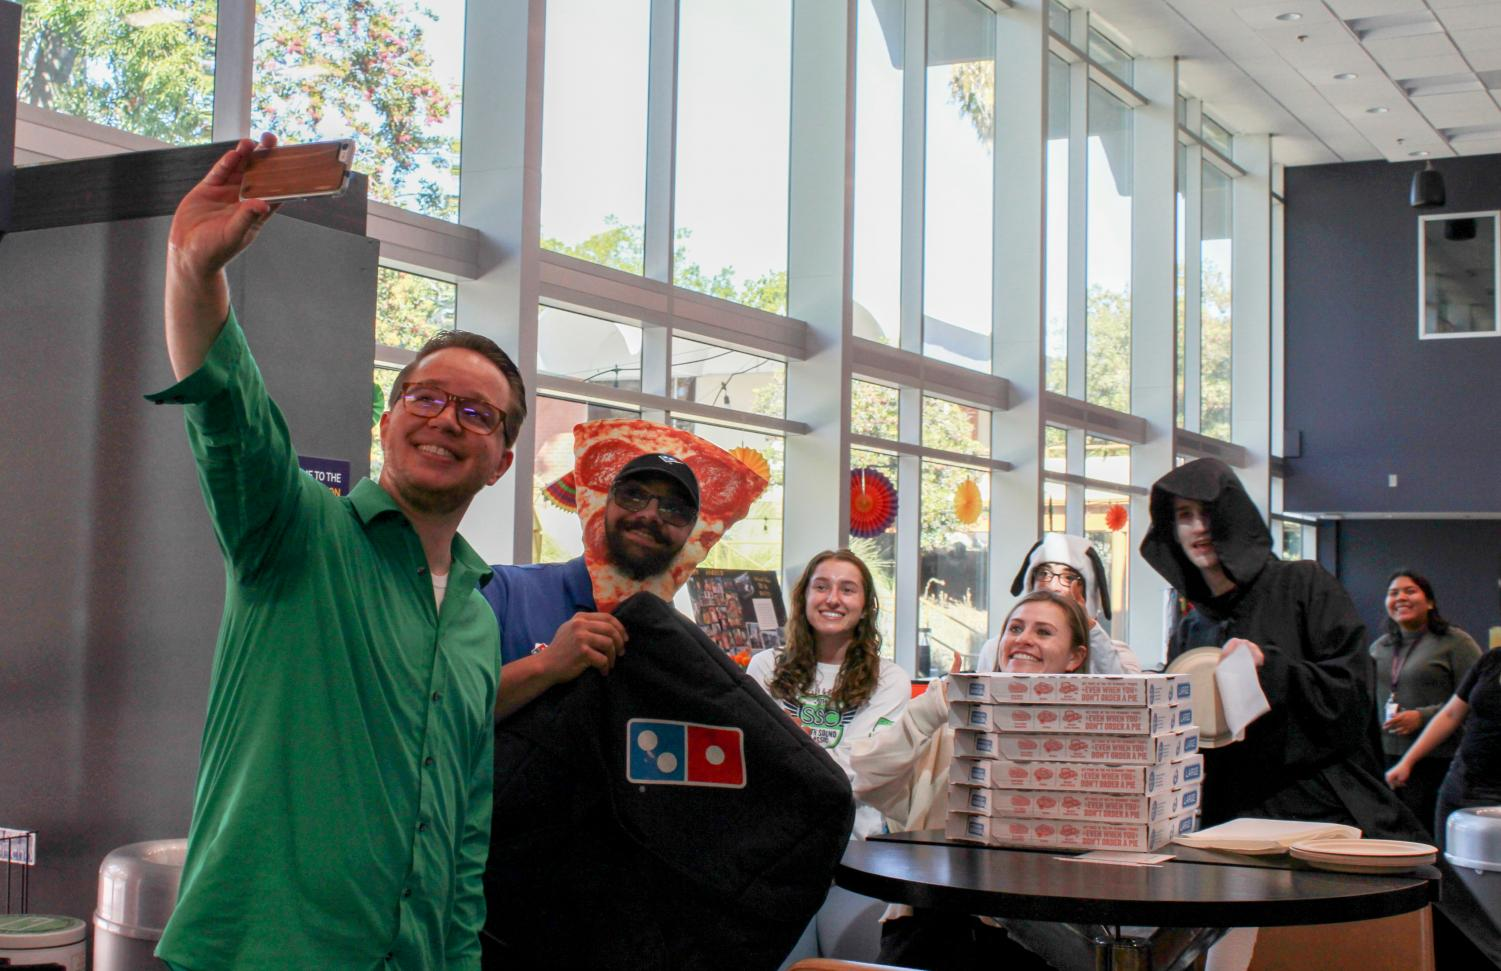 Andrew Hanson, senior coordinator for Residence Life and Student Conduct, takes a selfie after the Domino's delivery man dropped off boxes of pizza while dressed as a pizza.